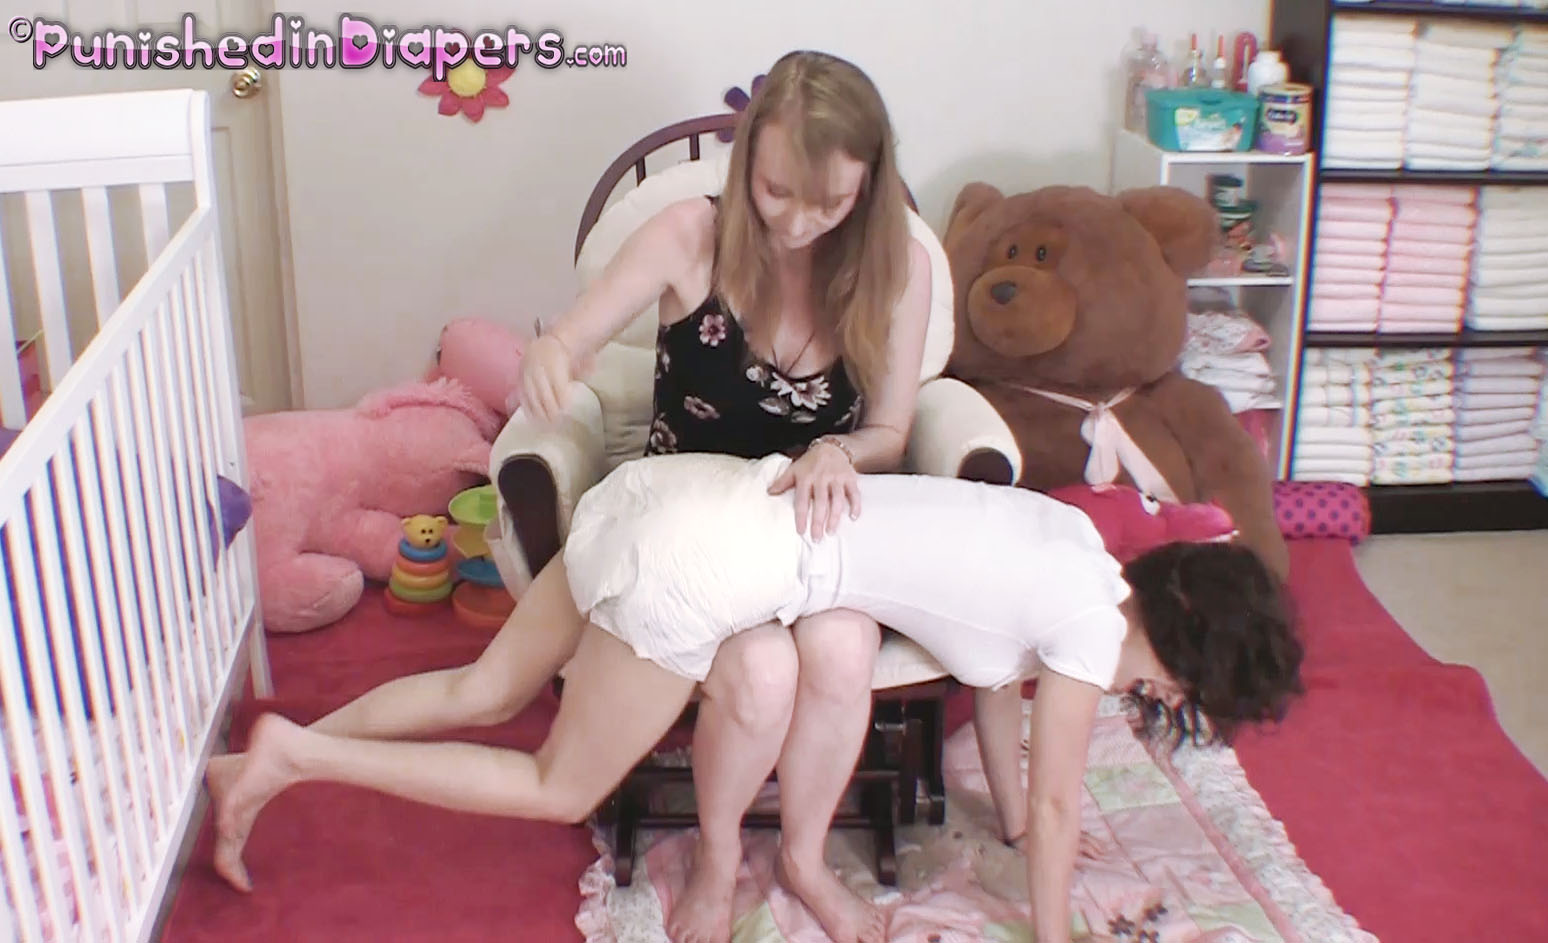 Spanked diaper changed over knee mom